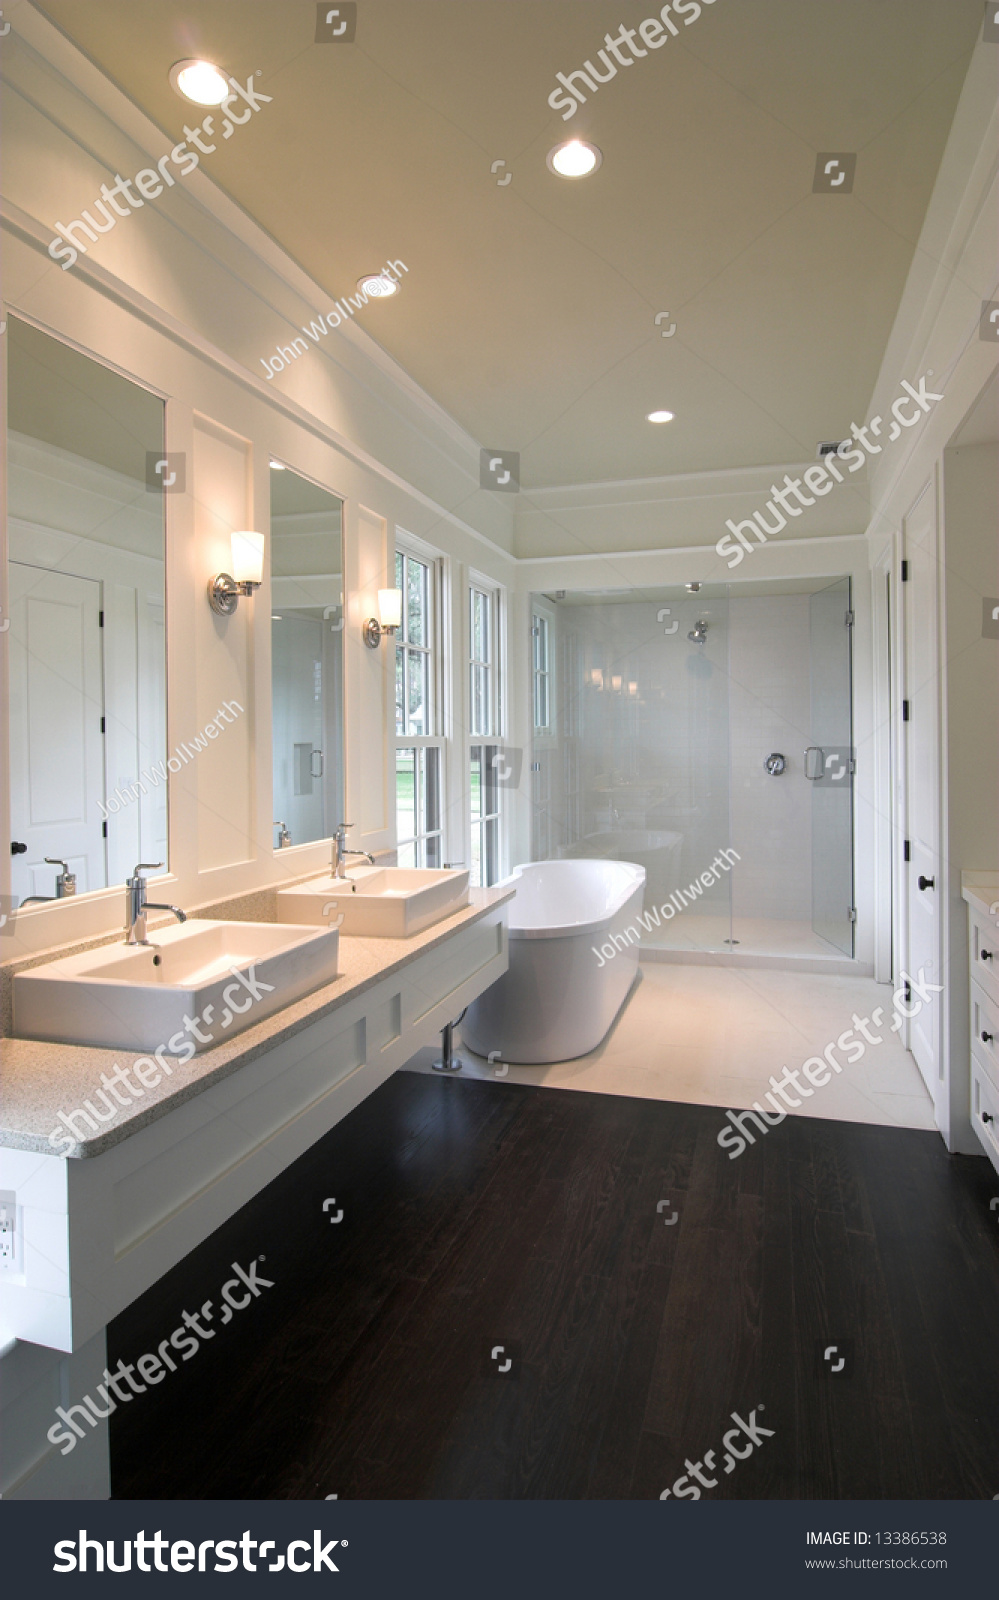 white bathrooms with dark floors. Luxurious Modern White Bathroom With Dark Wood Floors Stock Photo 13386538 Bathrooms  Home Design Health support us